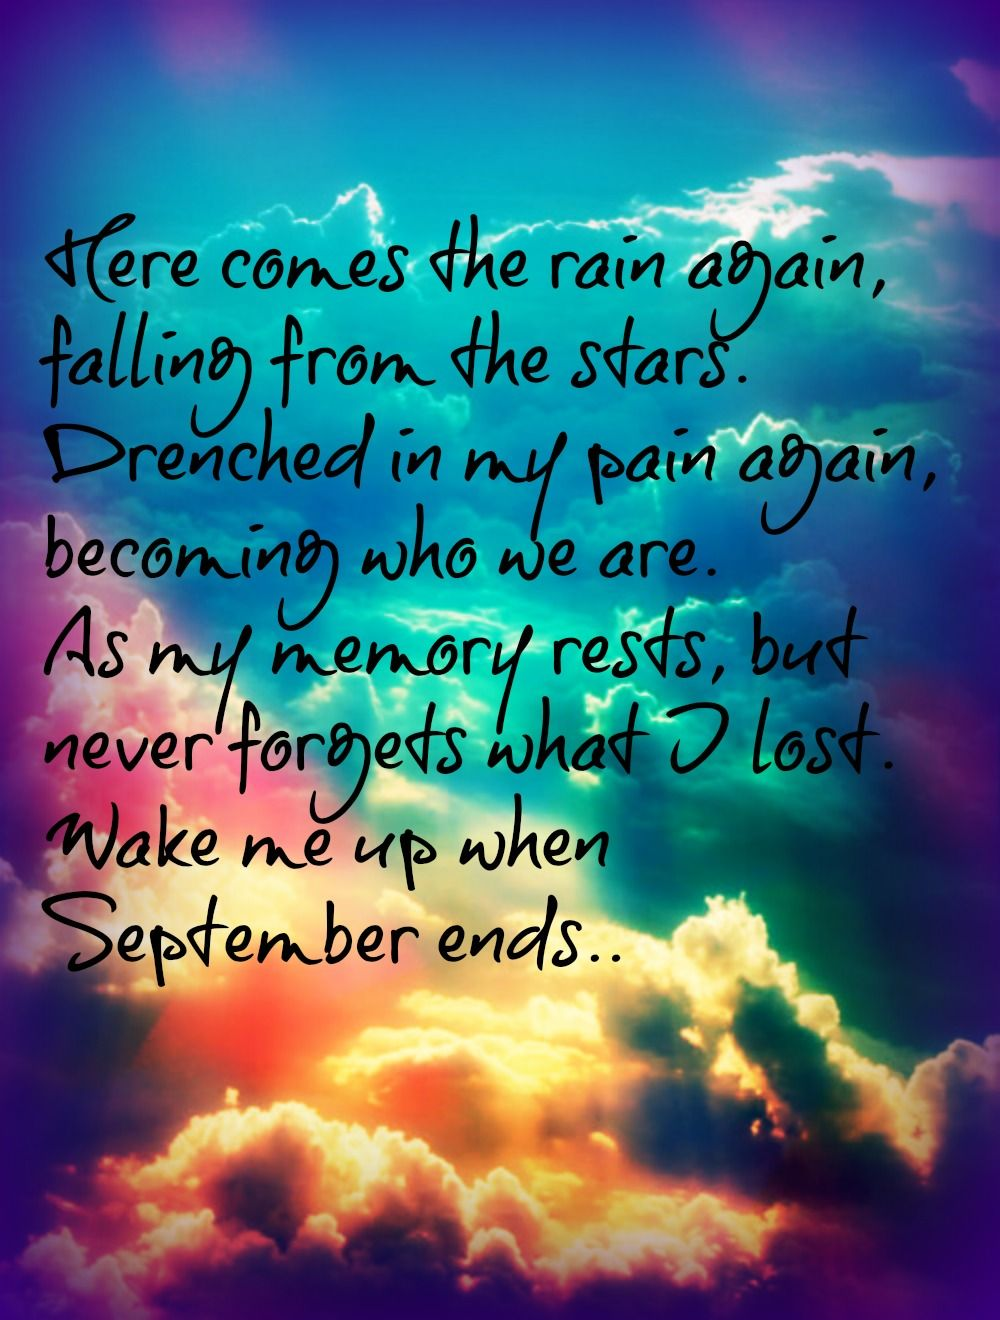 Here Comes The Rain Again Falling From The Stars Pin By Morgan Vickery On Music Green Day Lyrics Song Quotes When September Ends